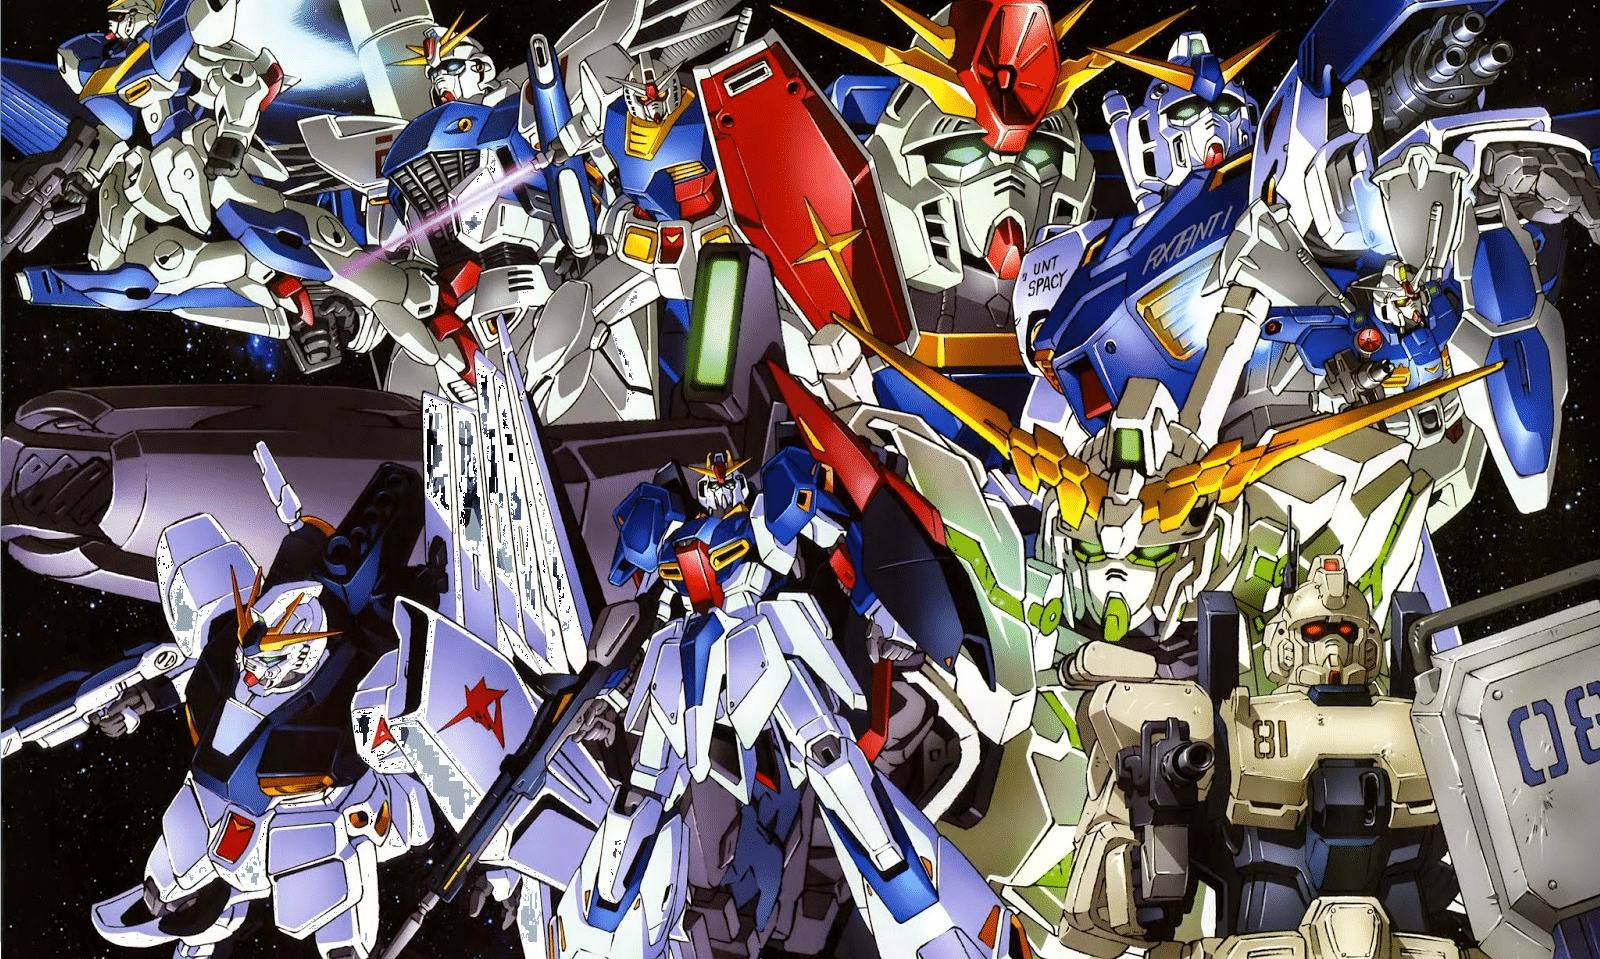 [Keywords] Mobile Suit Gundam and On-Ramps